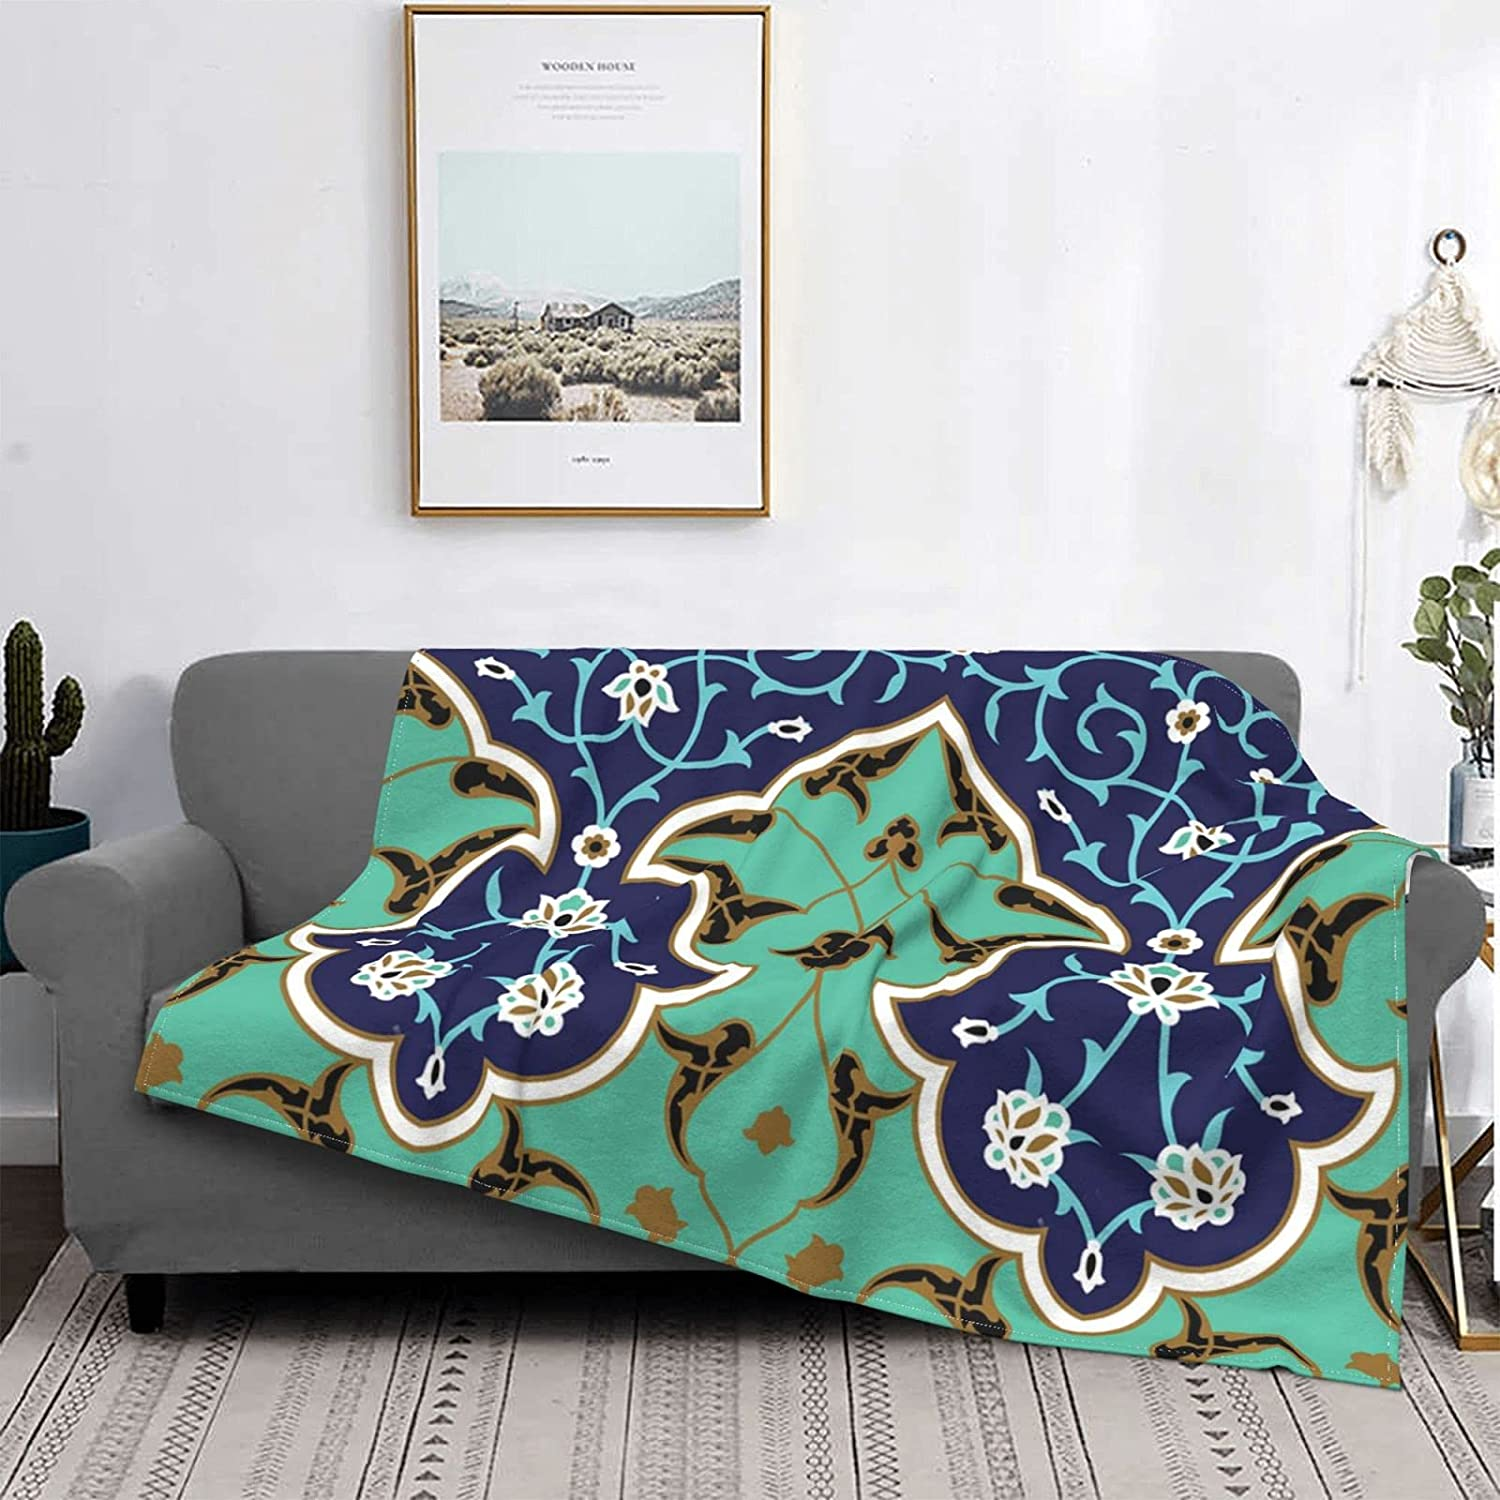 Easy-to-use Disyoya Throw Blanket Decor Floral Max 61% OFF Pattern Bed Soft Ligh